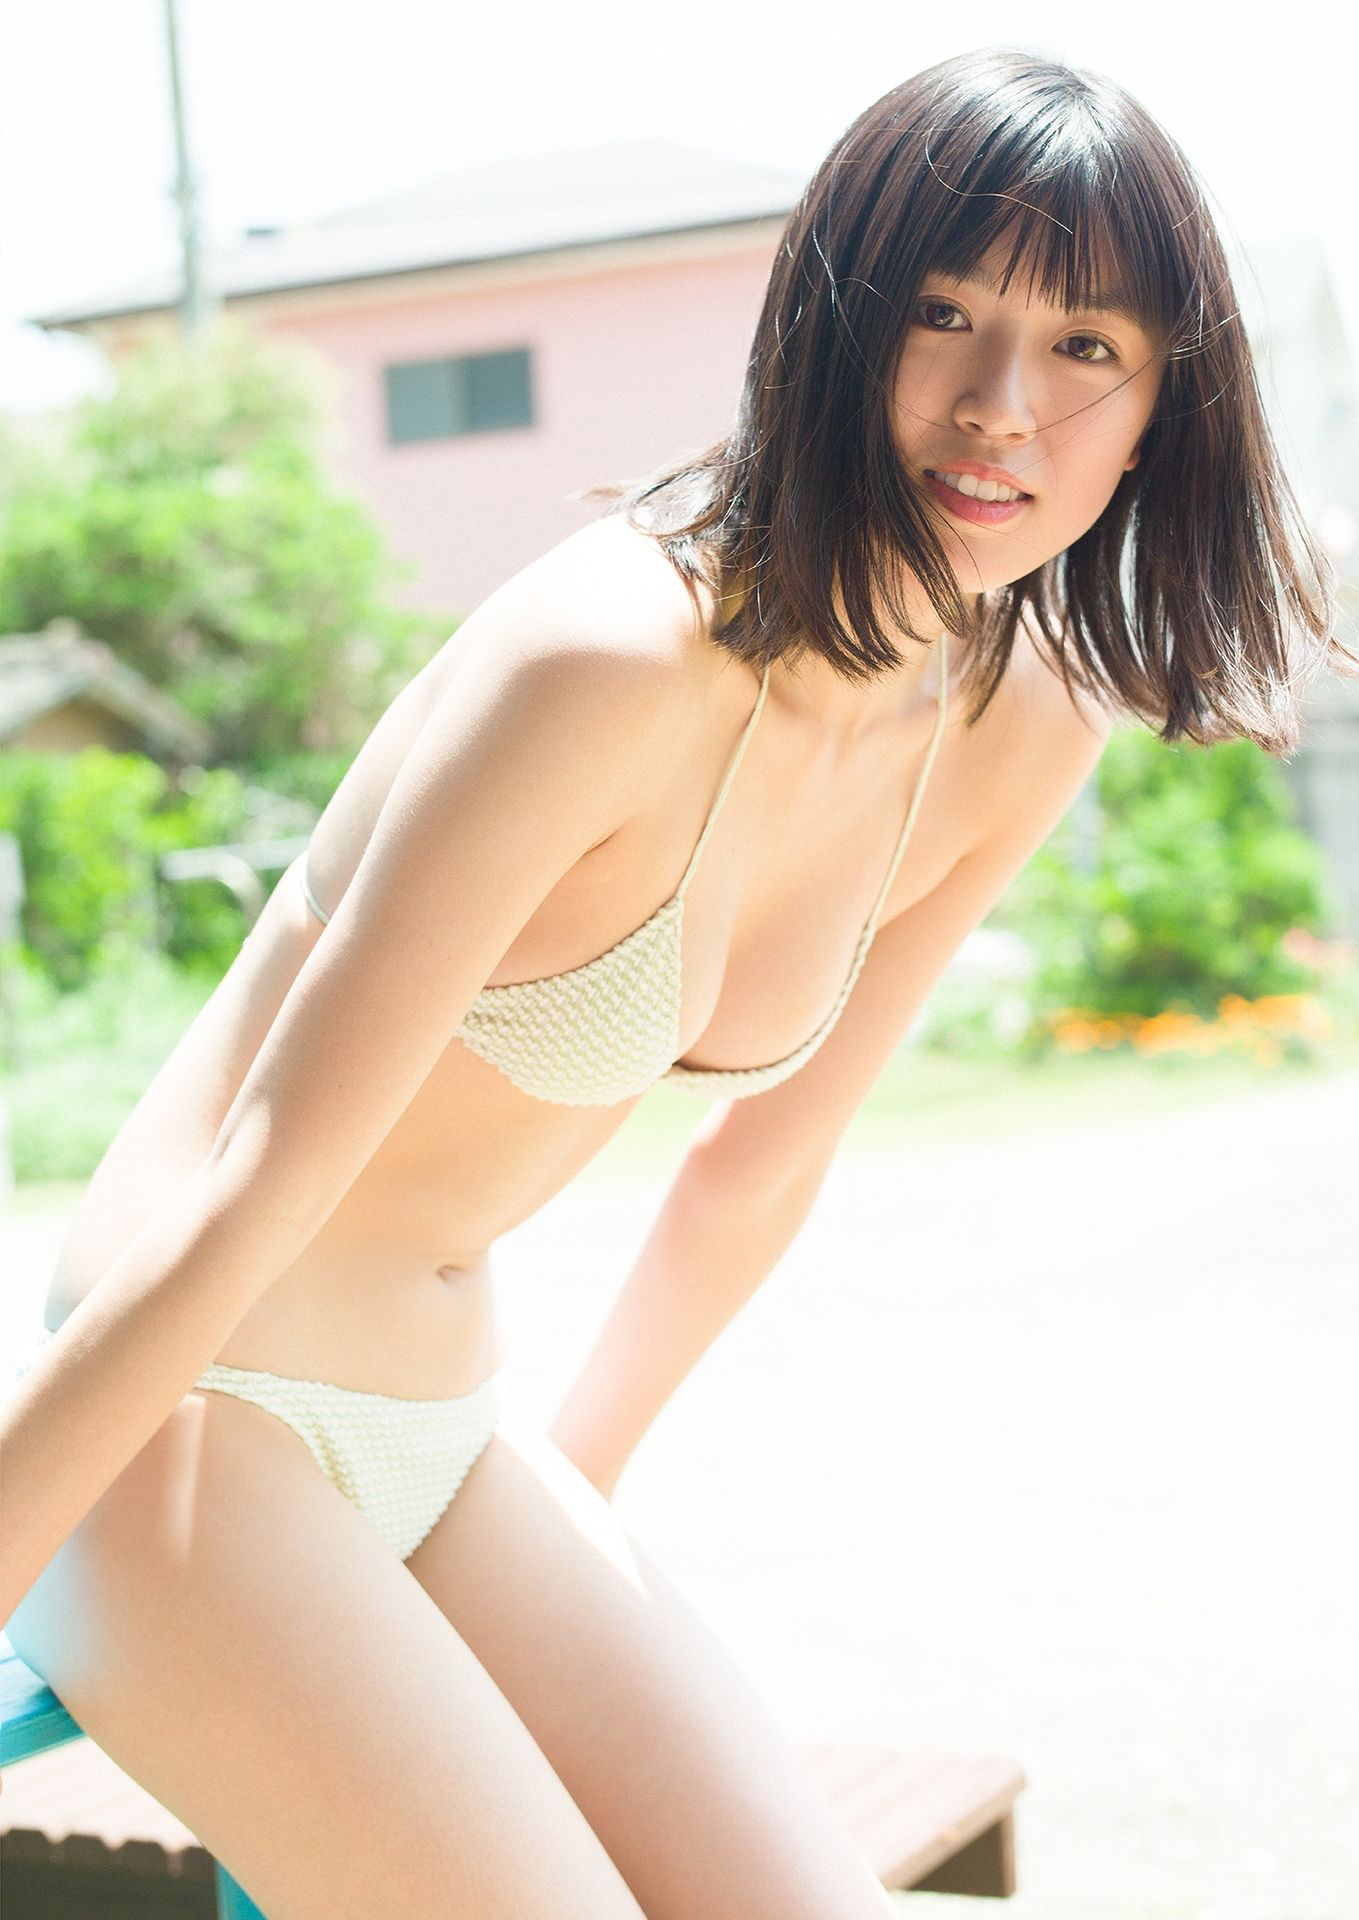 18yearold rookie Tamaya Kitamuki who is 170cm tall and 18 years old003